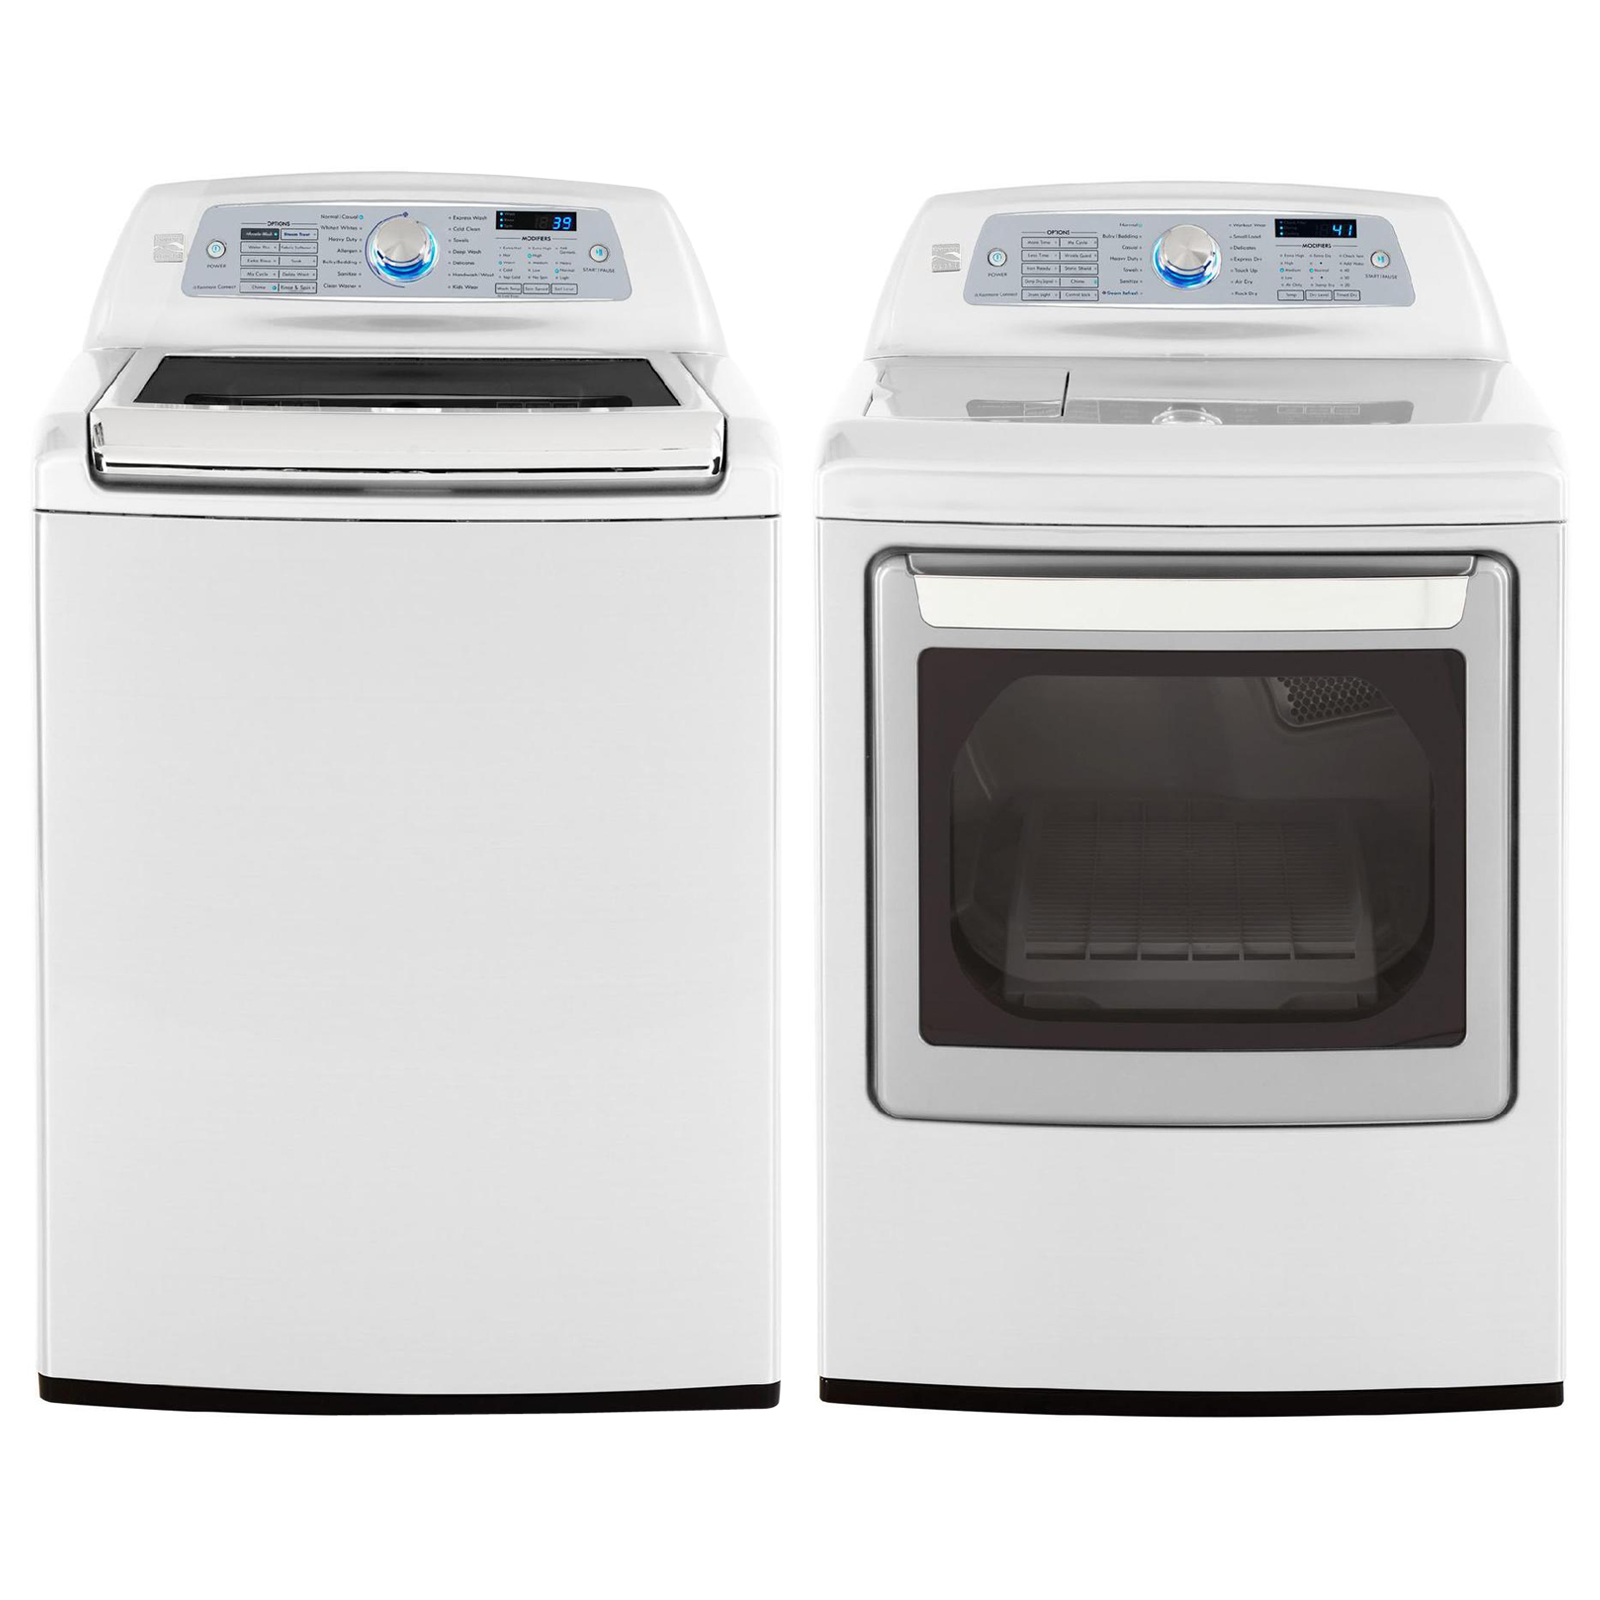 Kenmore elite 7 3 cu ft electric dryer w steam white 61622 Sears washer and dryer